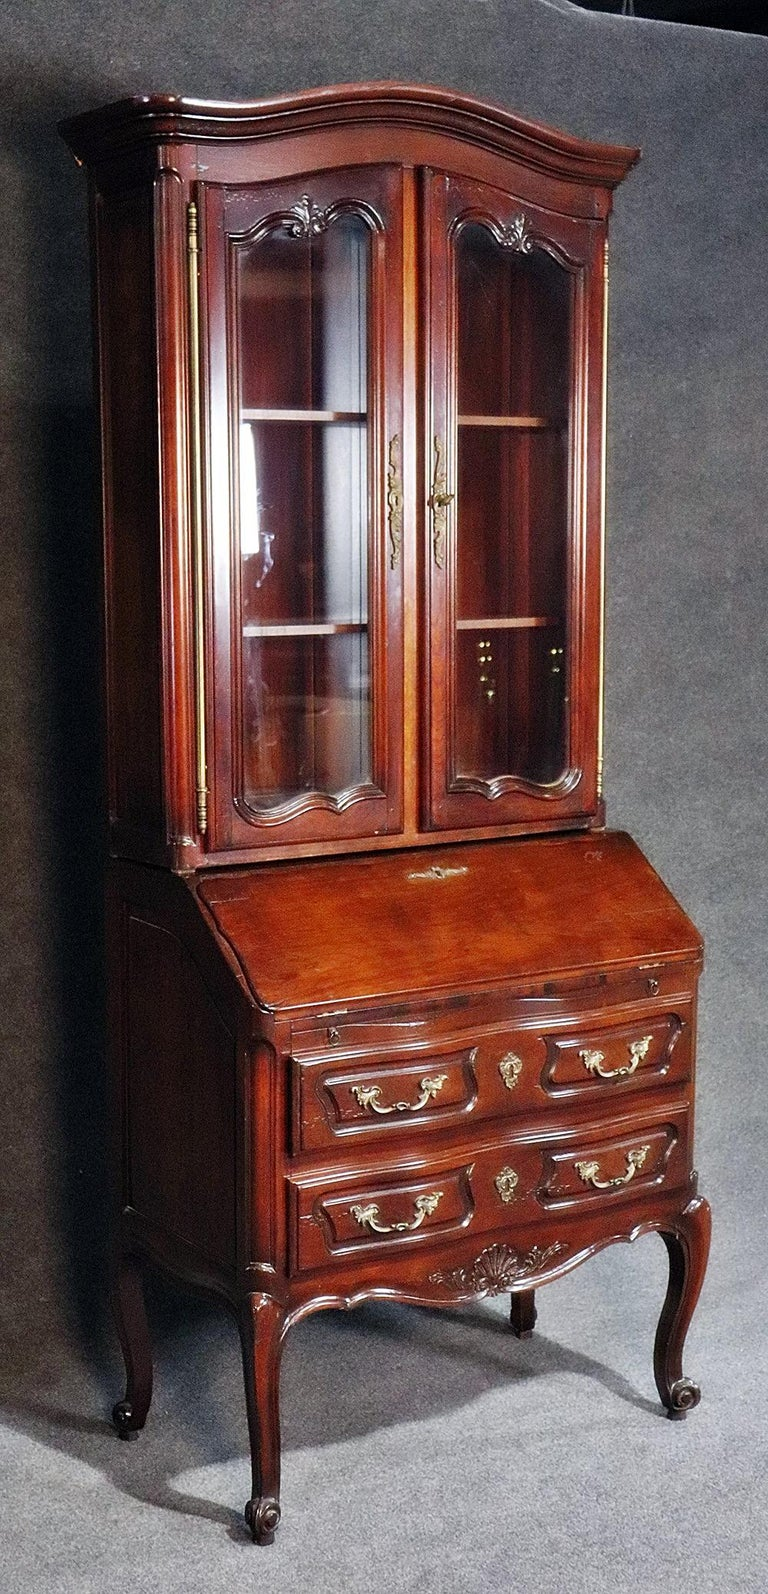 20th Century Aufrray style French Louis XV Style Walnut Secretary Desk with Bookcase Top